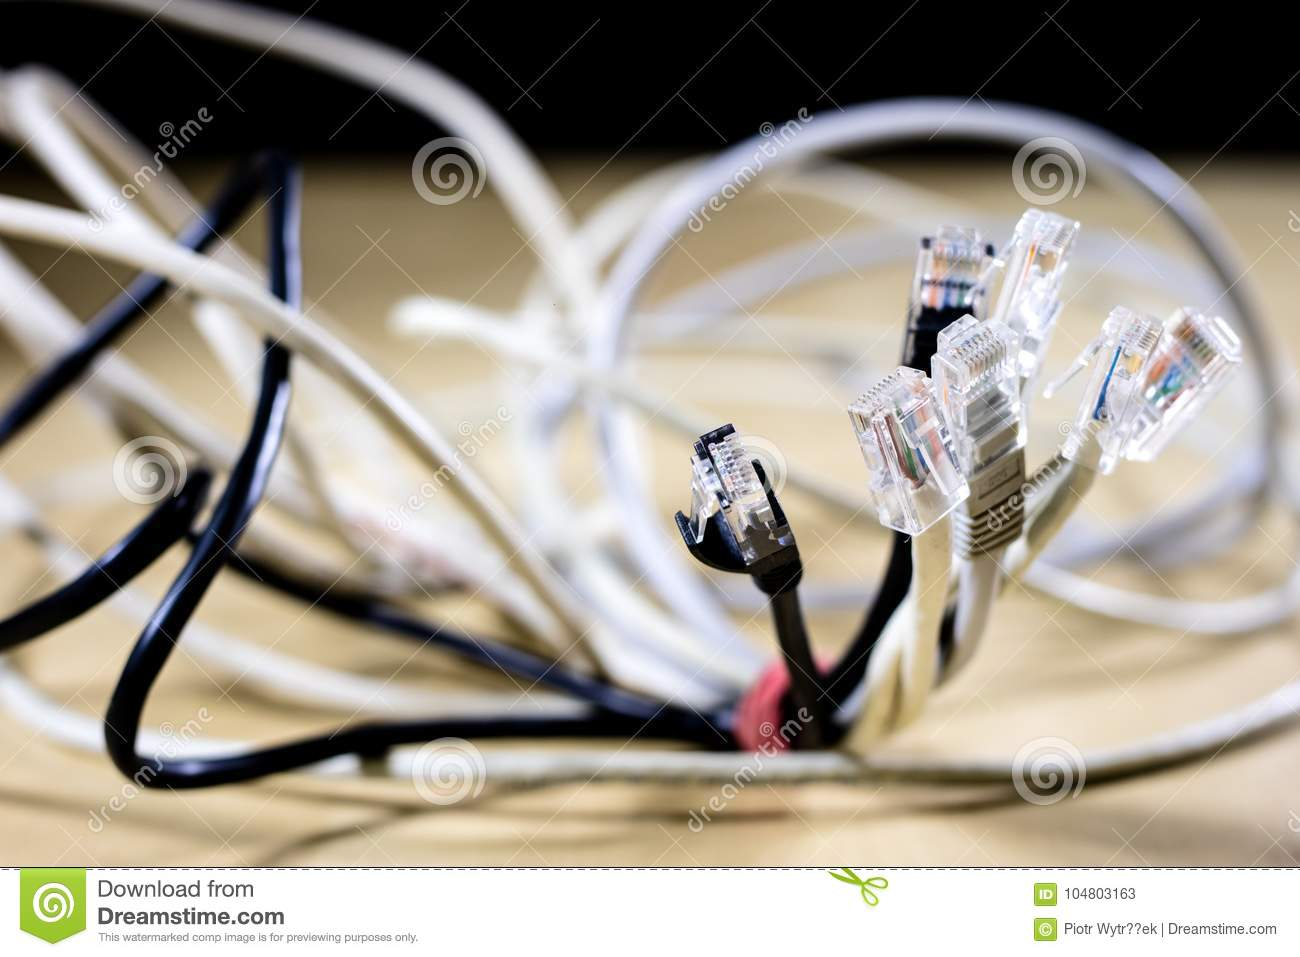 Network hub and rj45 cables on the stage. Computer accessories u